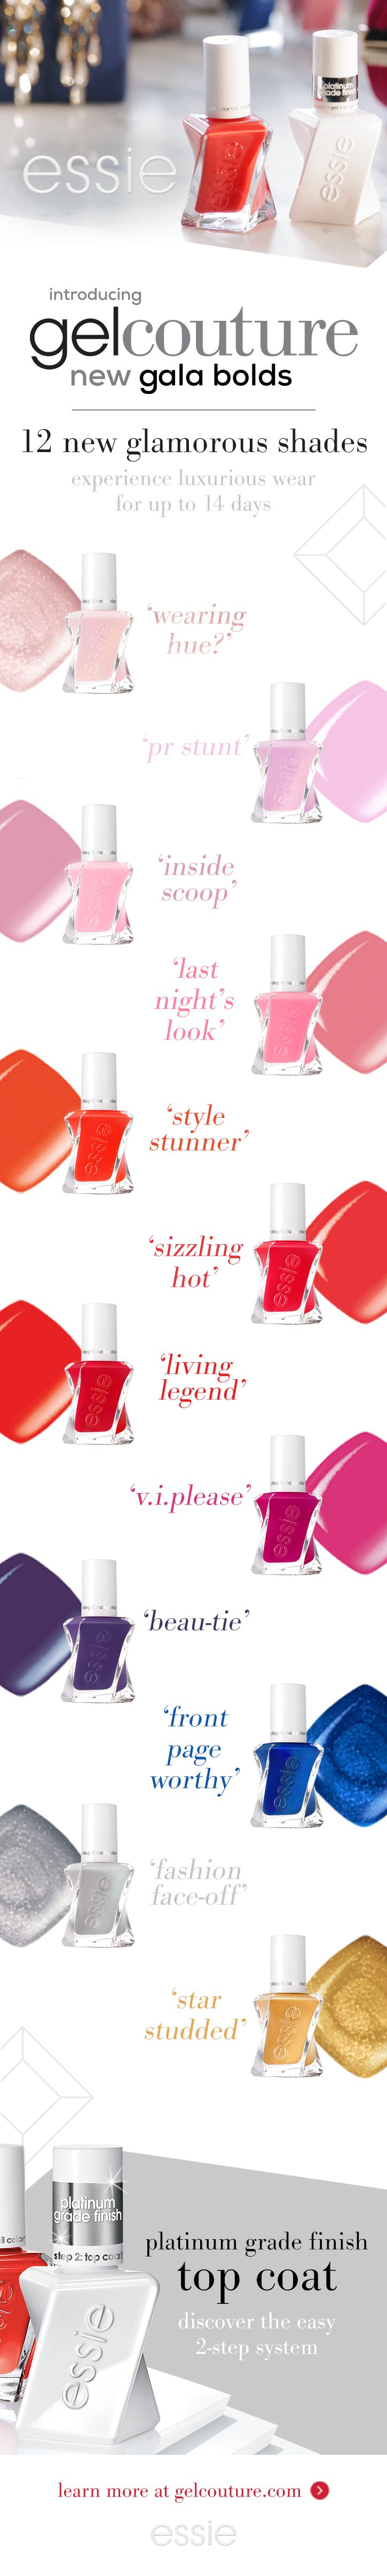 introducing 12 new VIP bold gel nail polish shades inspired by fashion's hottest black tie event. essie gel couture gala bolds is a new addition to the gel couture line bringing new bold nail colors in rich, vibrant shades of gold, red, pink, cobalt and amethyst. the platinum-grade top coat features a platinum ingredient key for a longwear, gel-like mani. this twist on a classic provides up to 12/14 days of wear in an easy 2-step system – no base coat or lamp needed for a perfect gel-like…